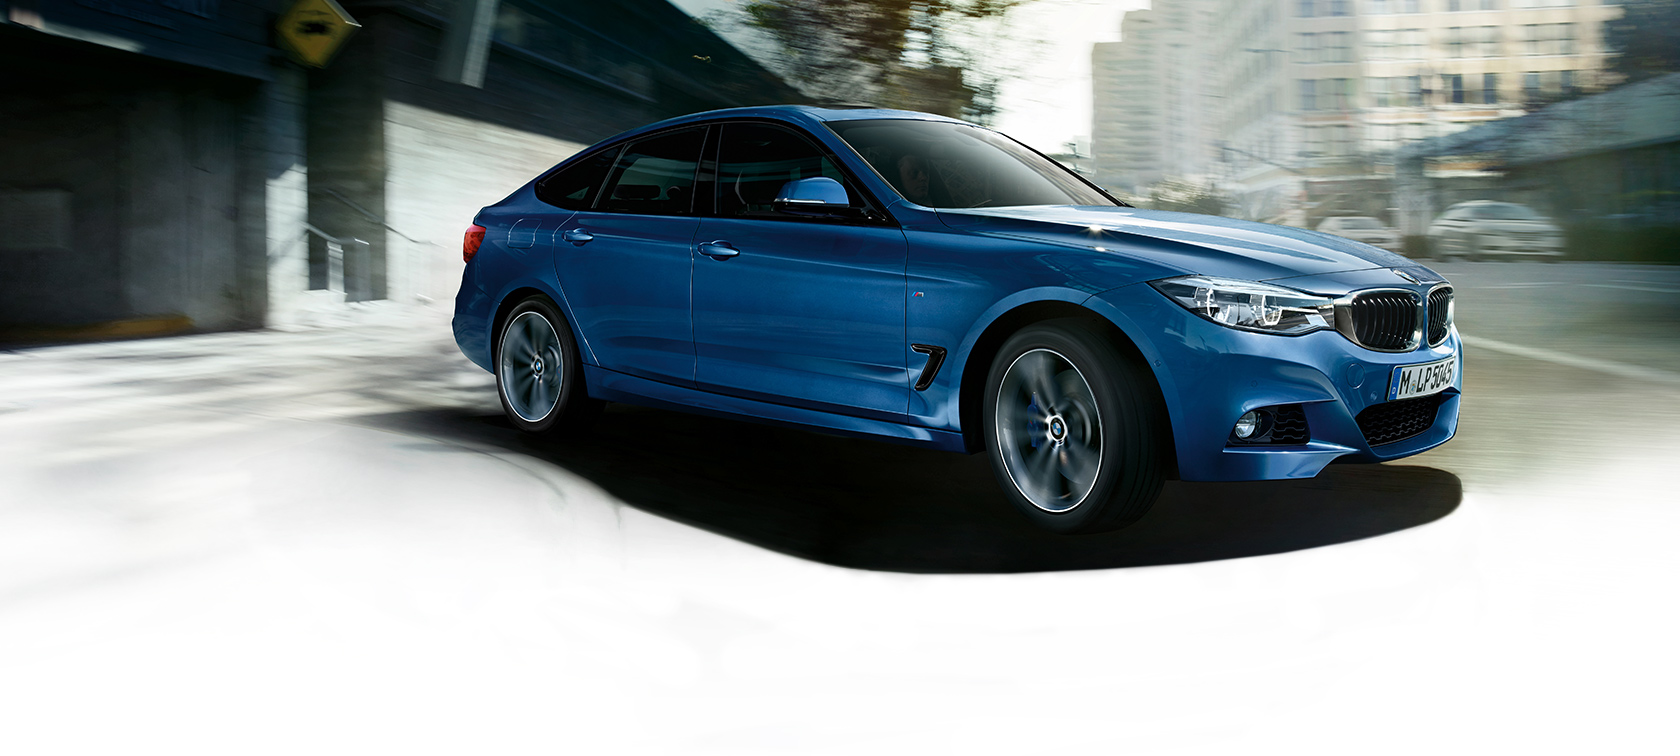 The Bmw 3 Series Gran Turismo At A Glance